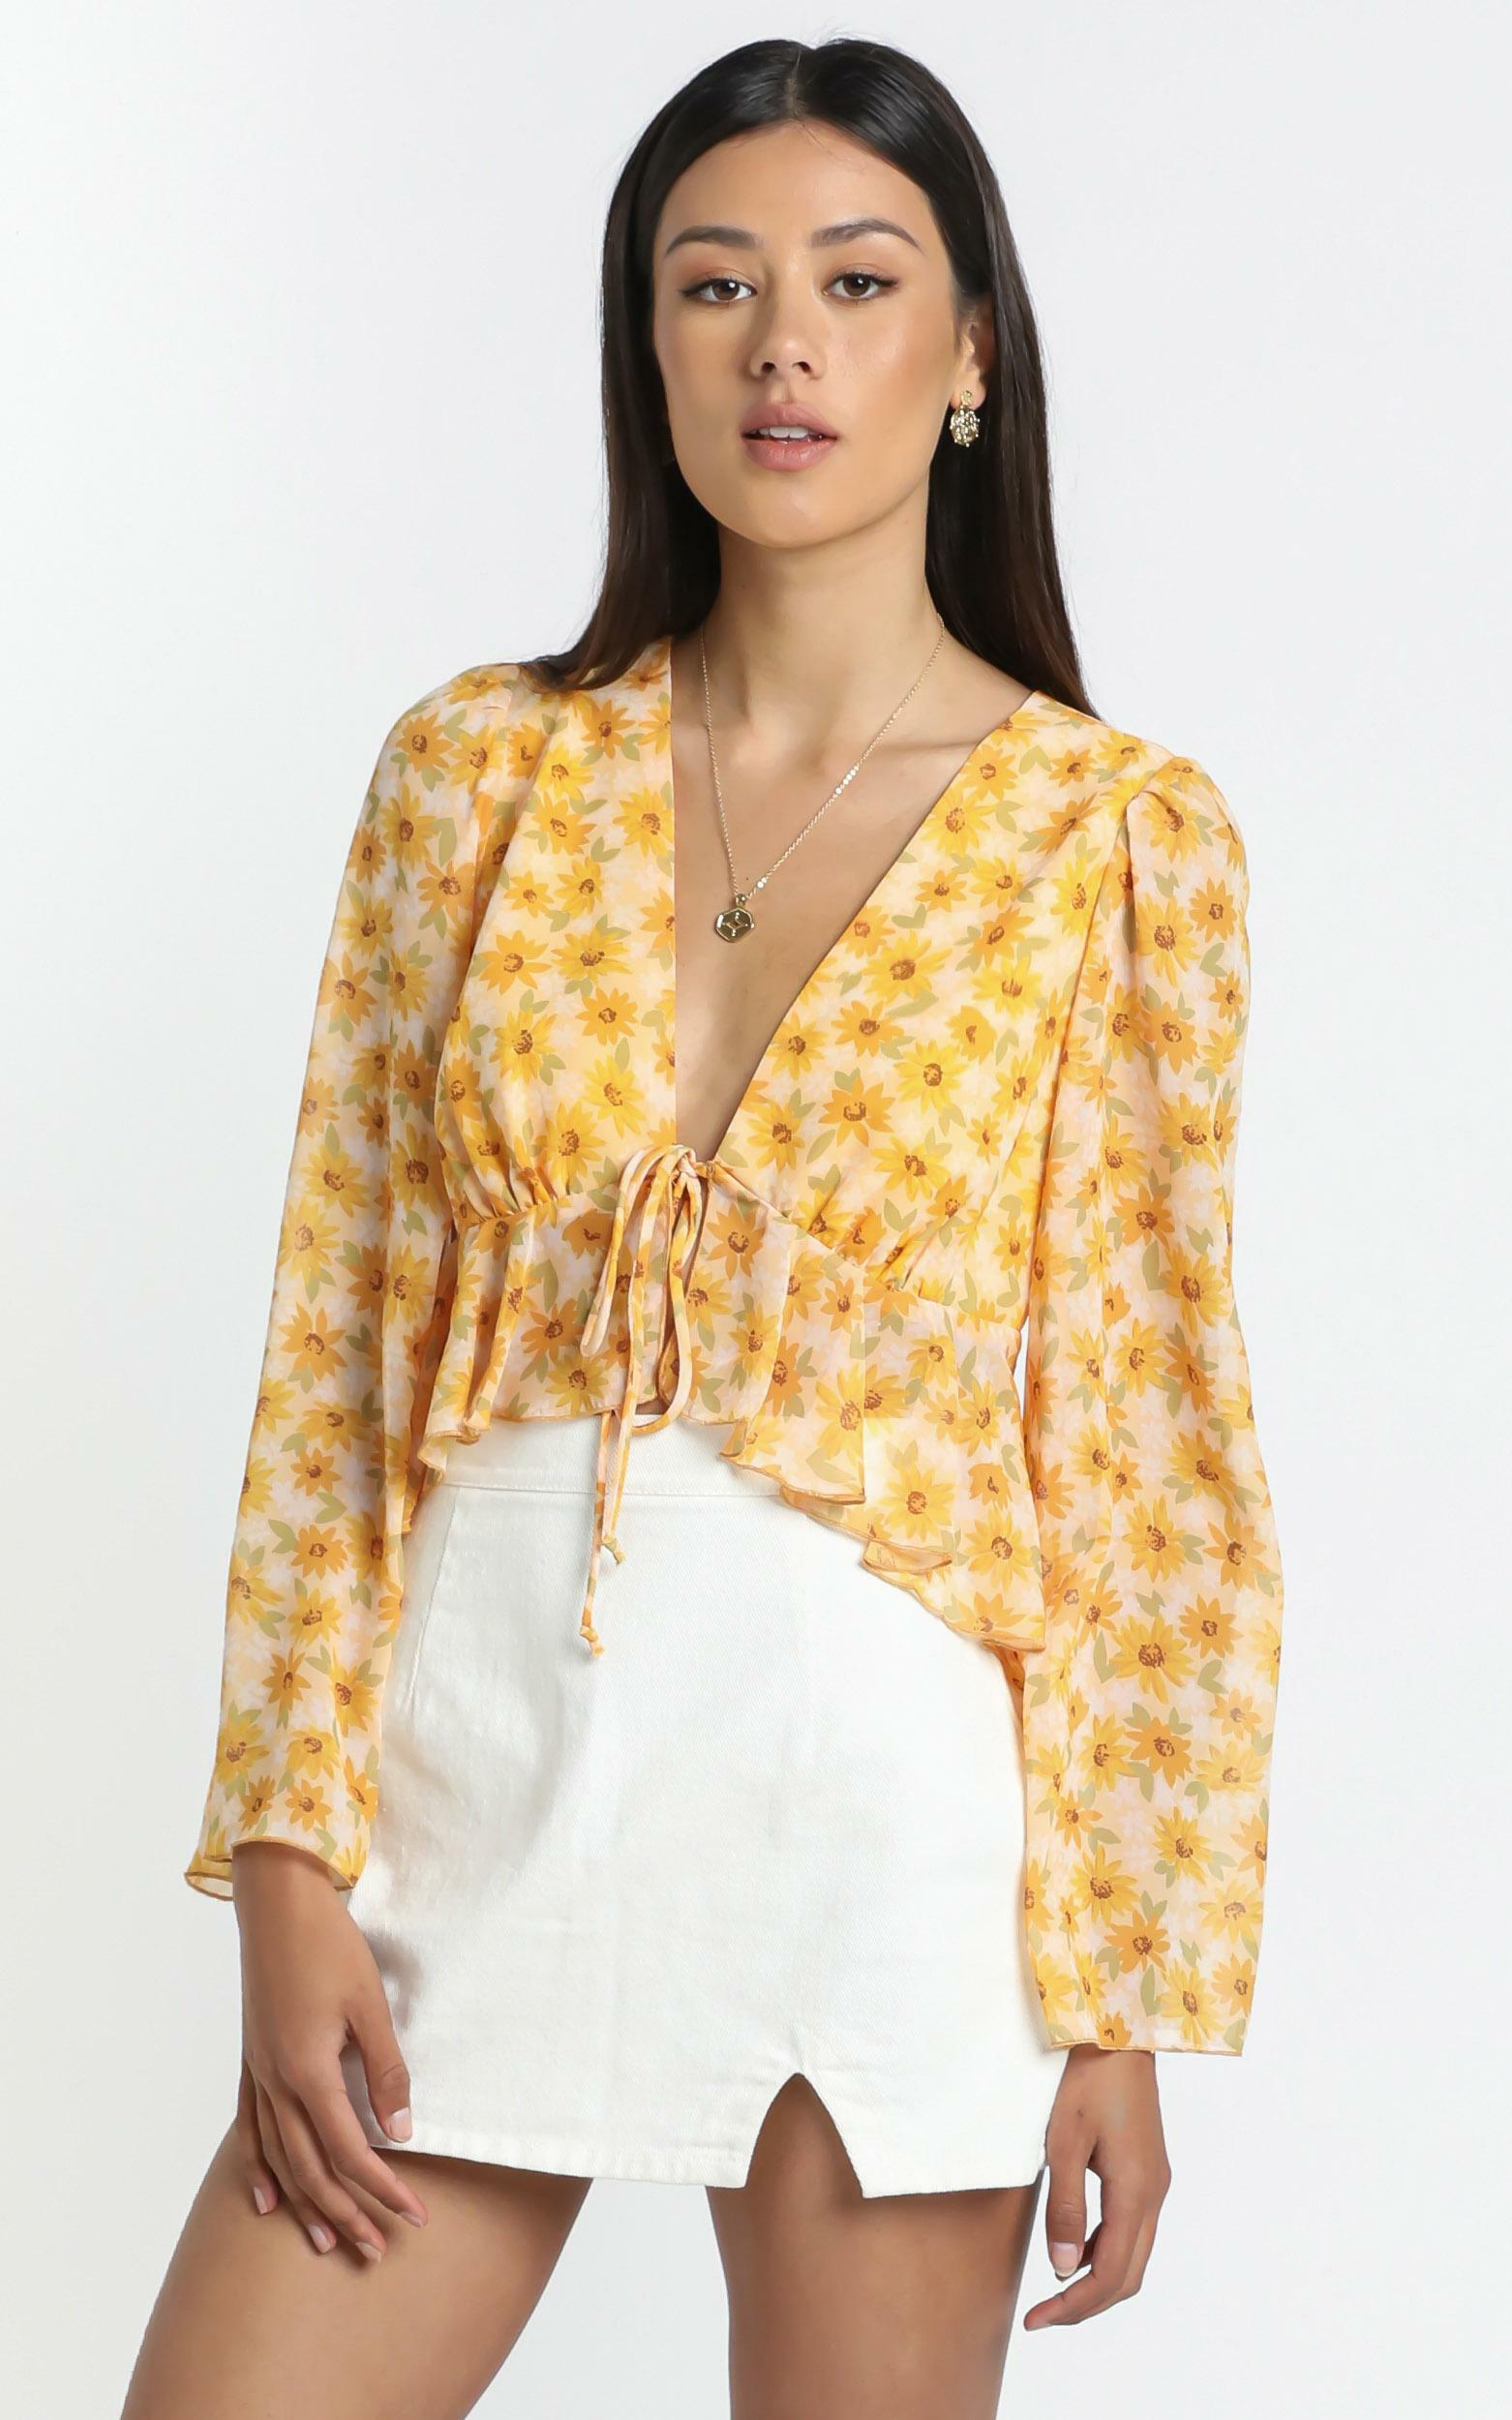 Dance It Out Top in Sunflower - 16 (XXL), Yellow, hi-res image number null